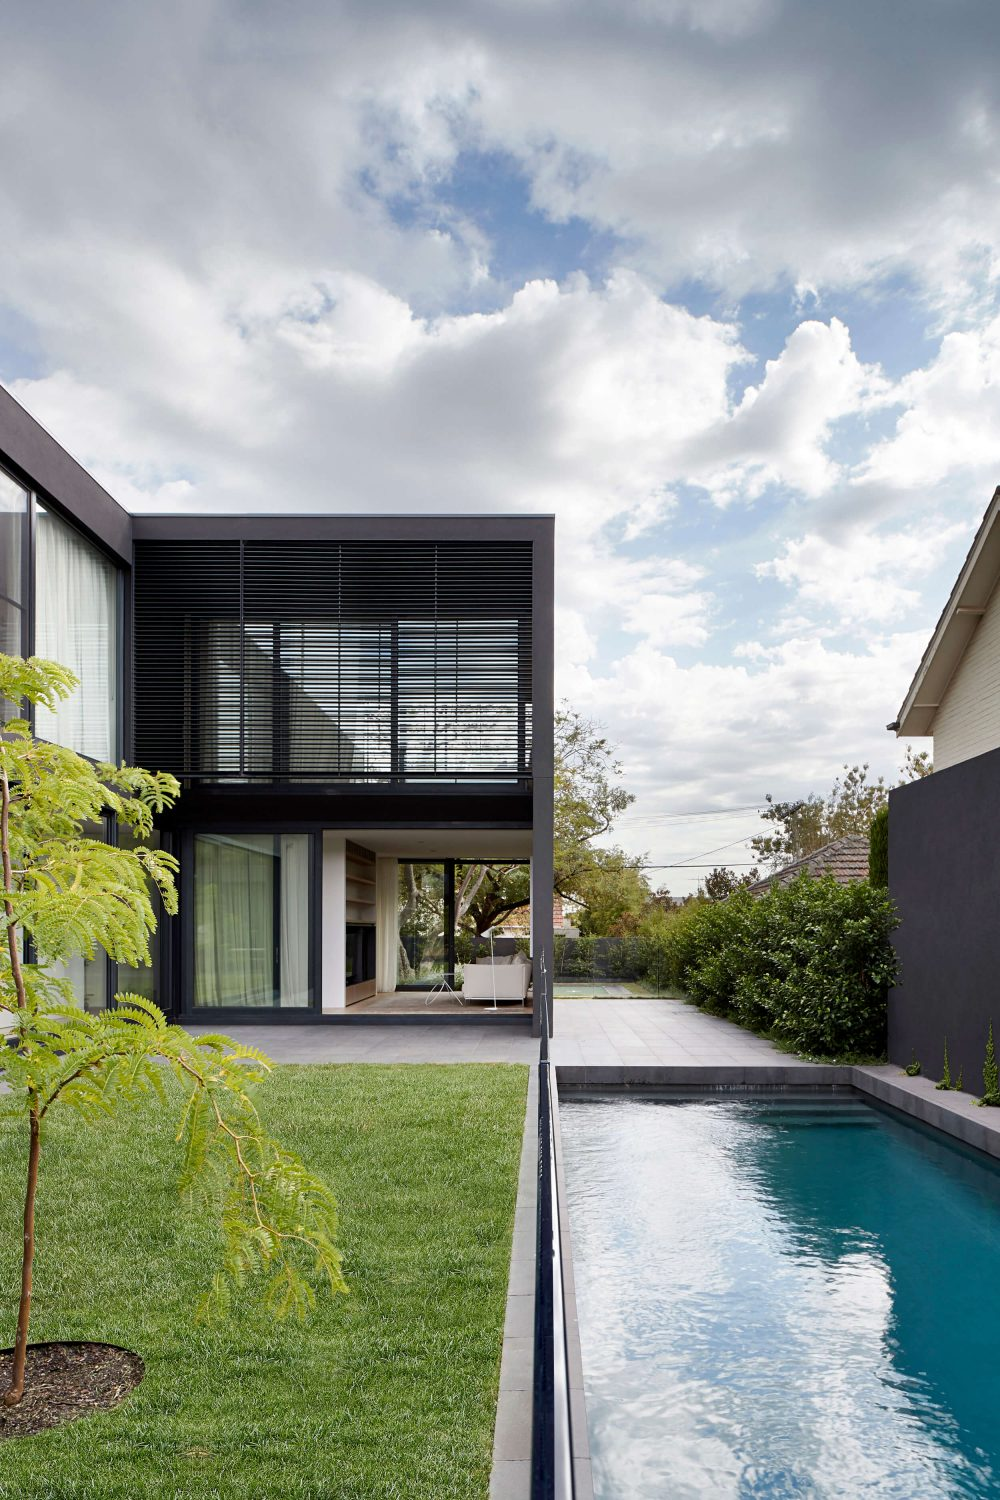 Mayfield Avenue Residence by studiofour